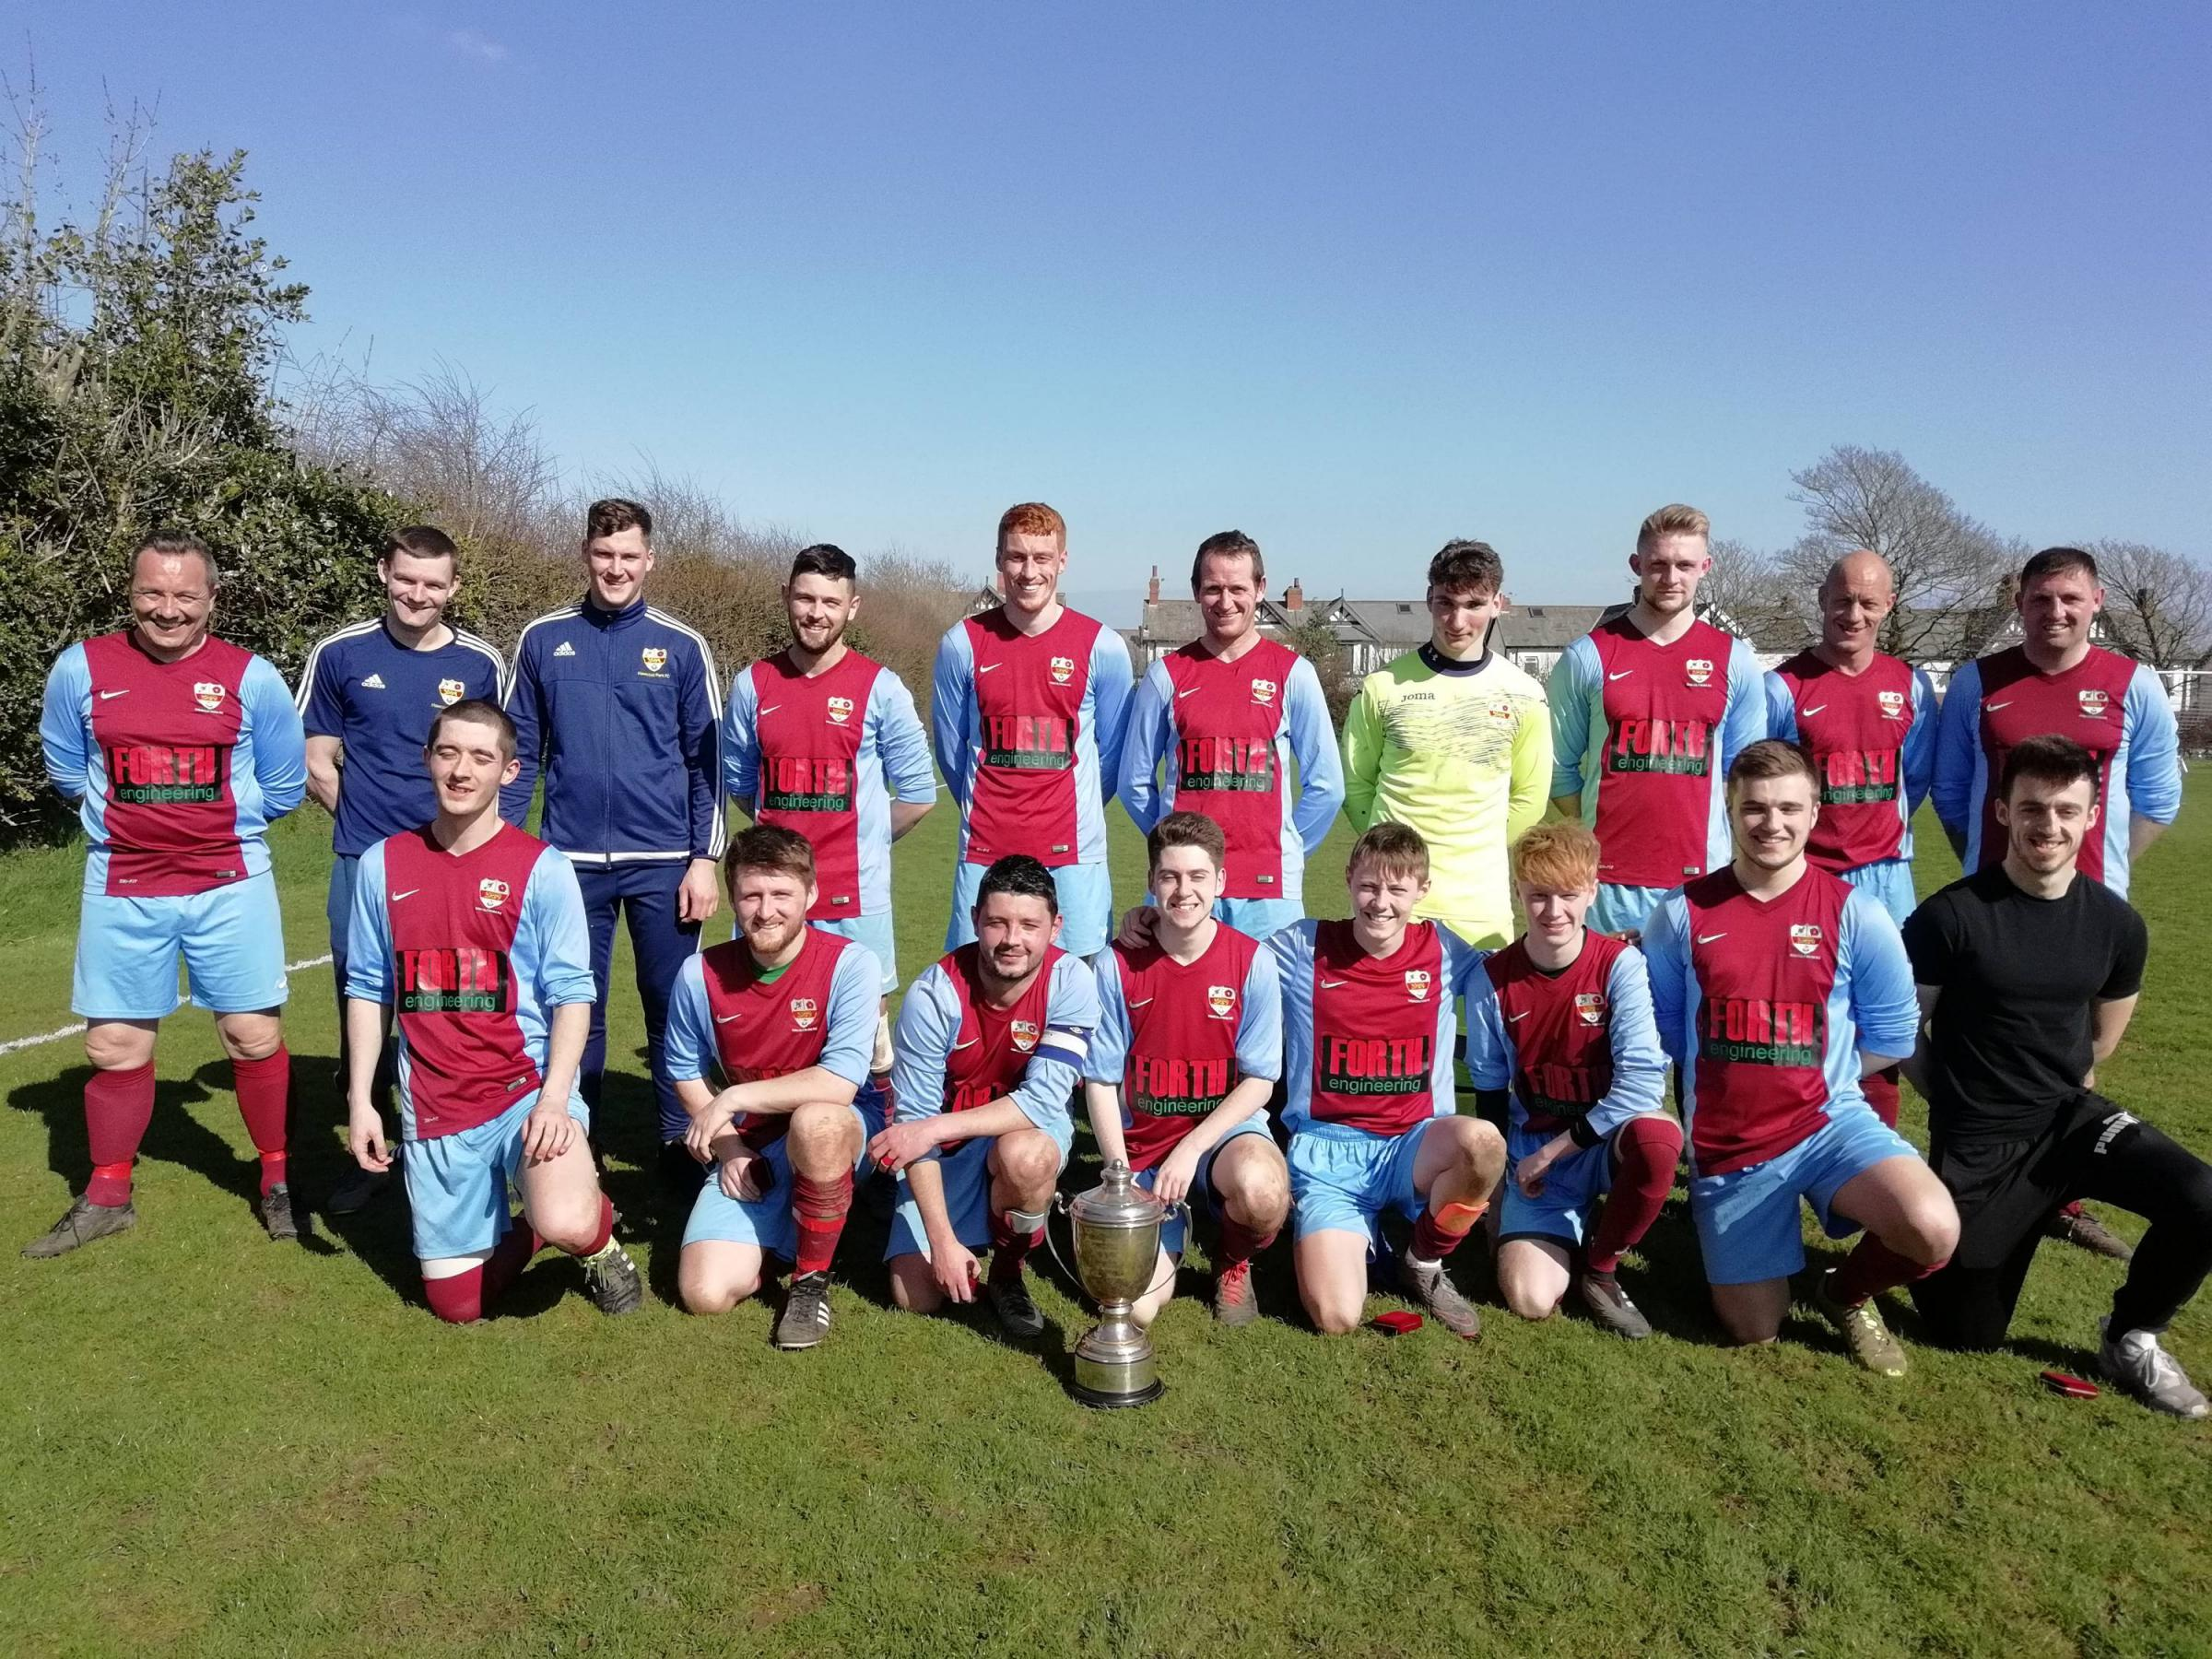 Riflemans Garage Furness Premier Division champions 2017/18 Hawcoat Park reserves. Saturday, April 14, 2018 SUBMITTED BY JOHN KNAGG